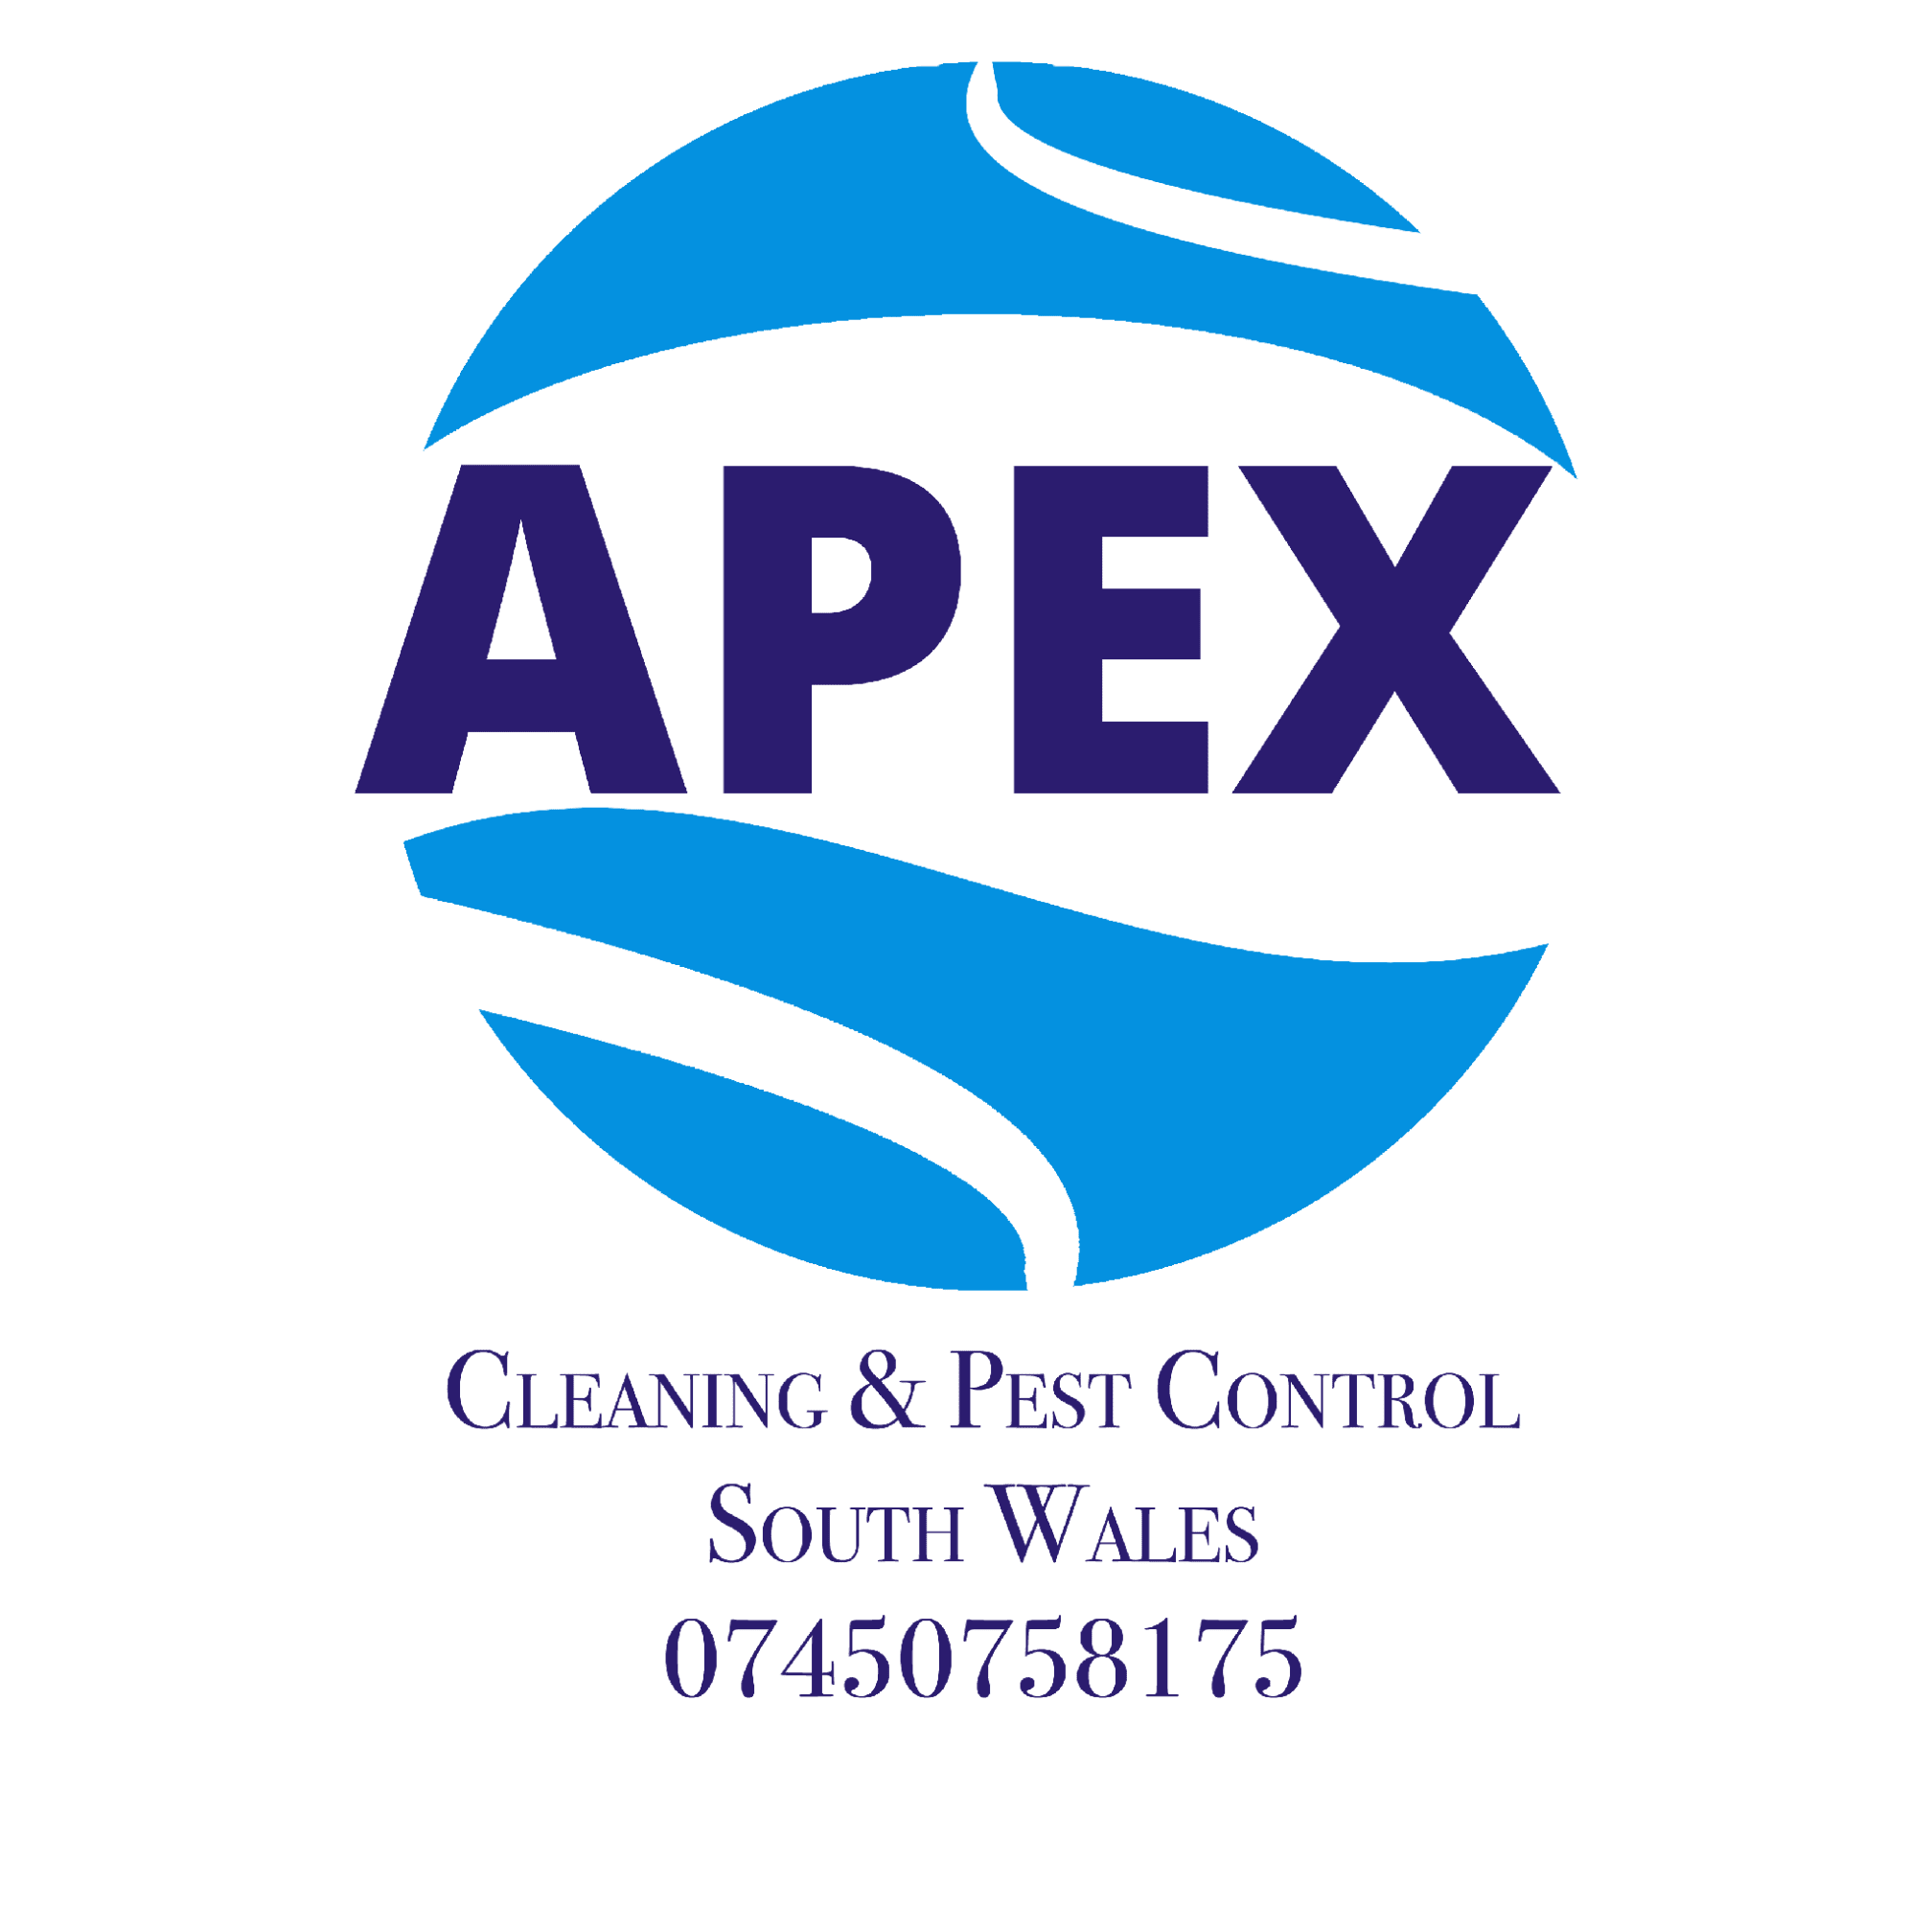 Apex Cleaning and Pest Control - Port Talbot, West Glamorgan SA12 9AQ - 07450 758175   ShowMeLocal.com